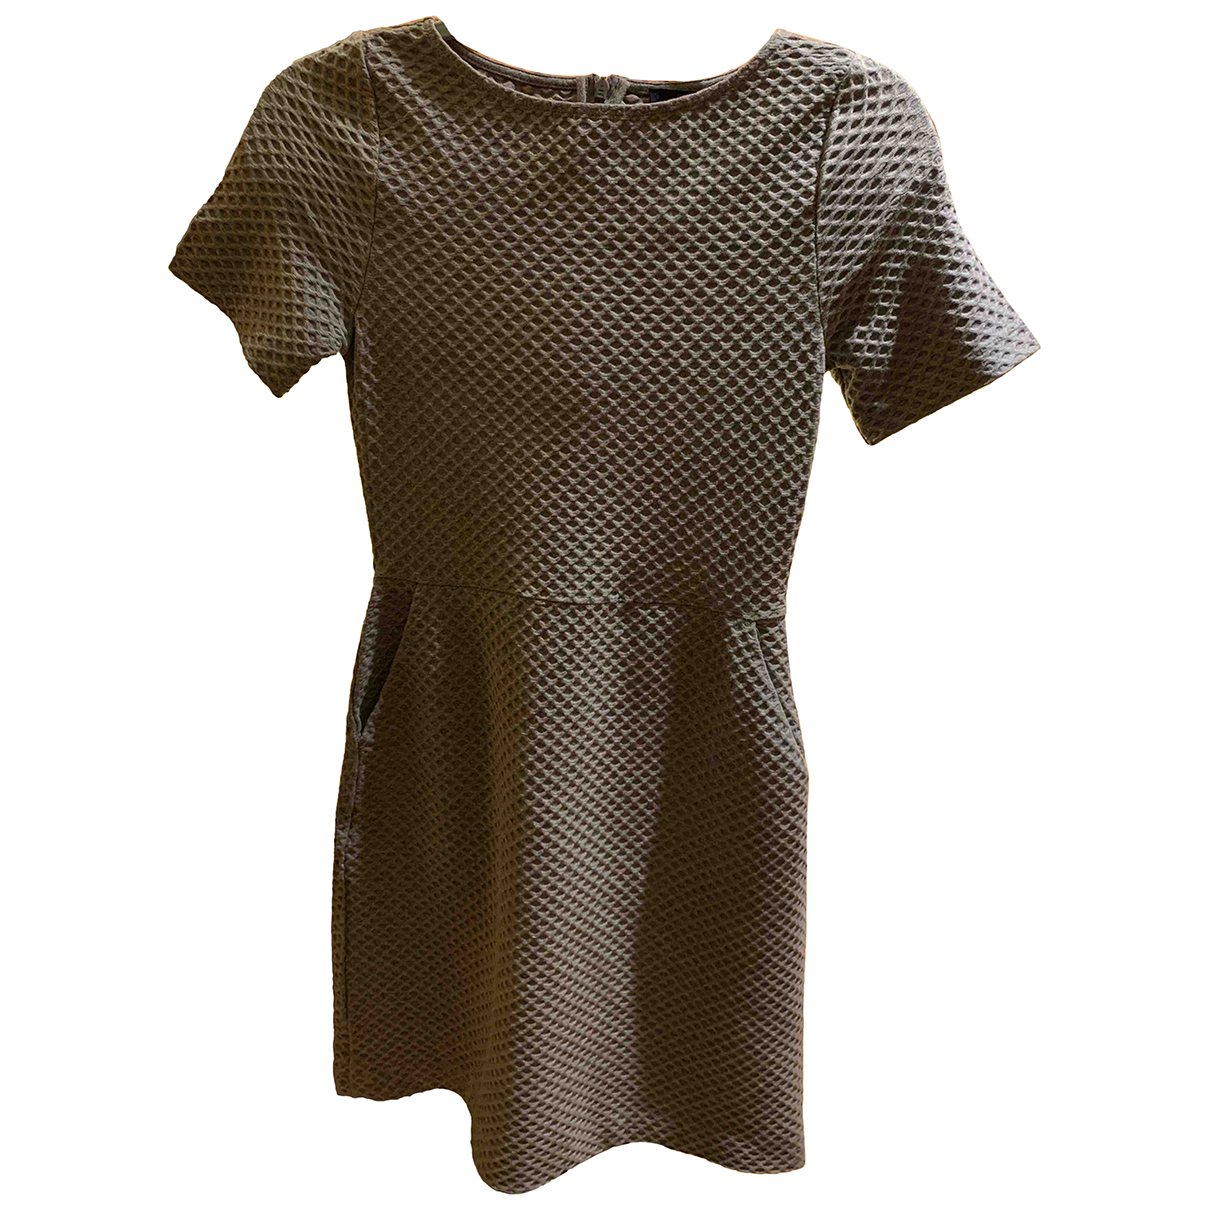 French Connection N Grey Cotton - elasthane dress for Women 6 UK